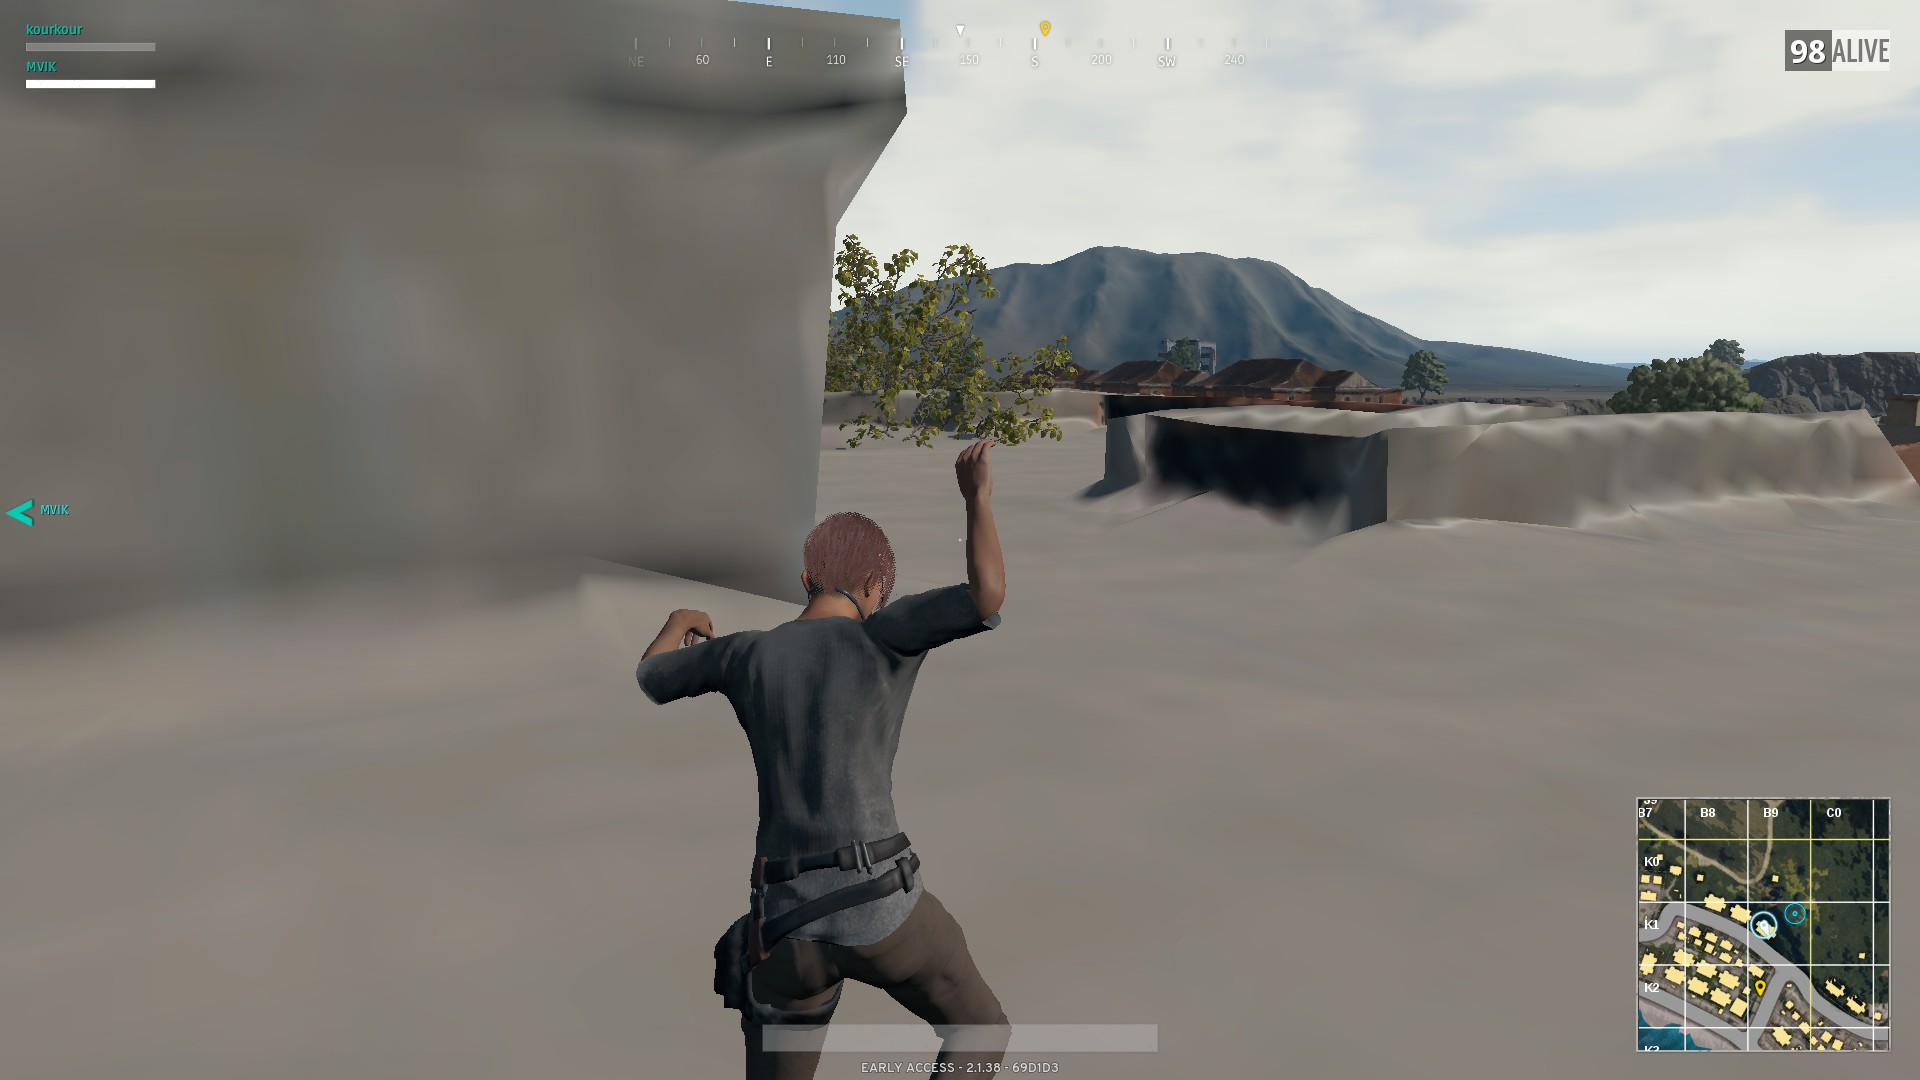 PUBG - Textures not loading fully for first 1-2min  [HELP